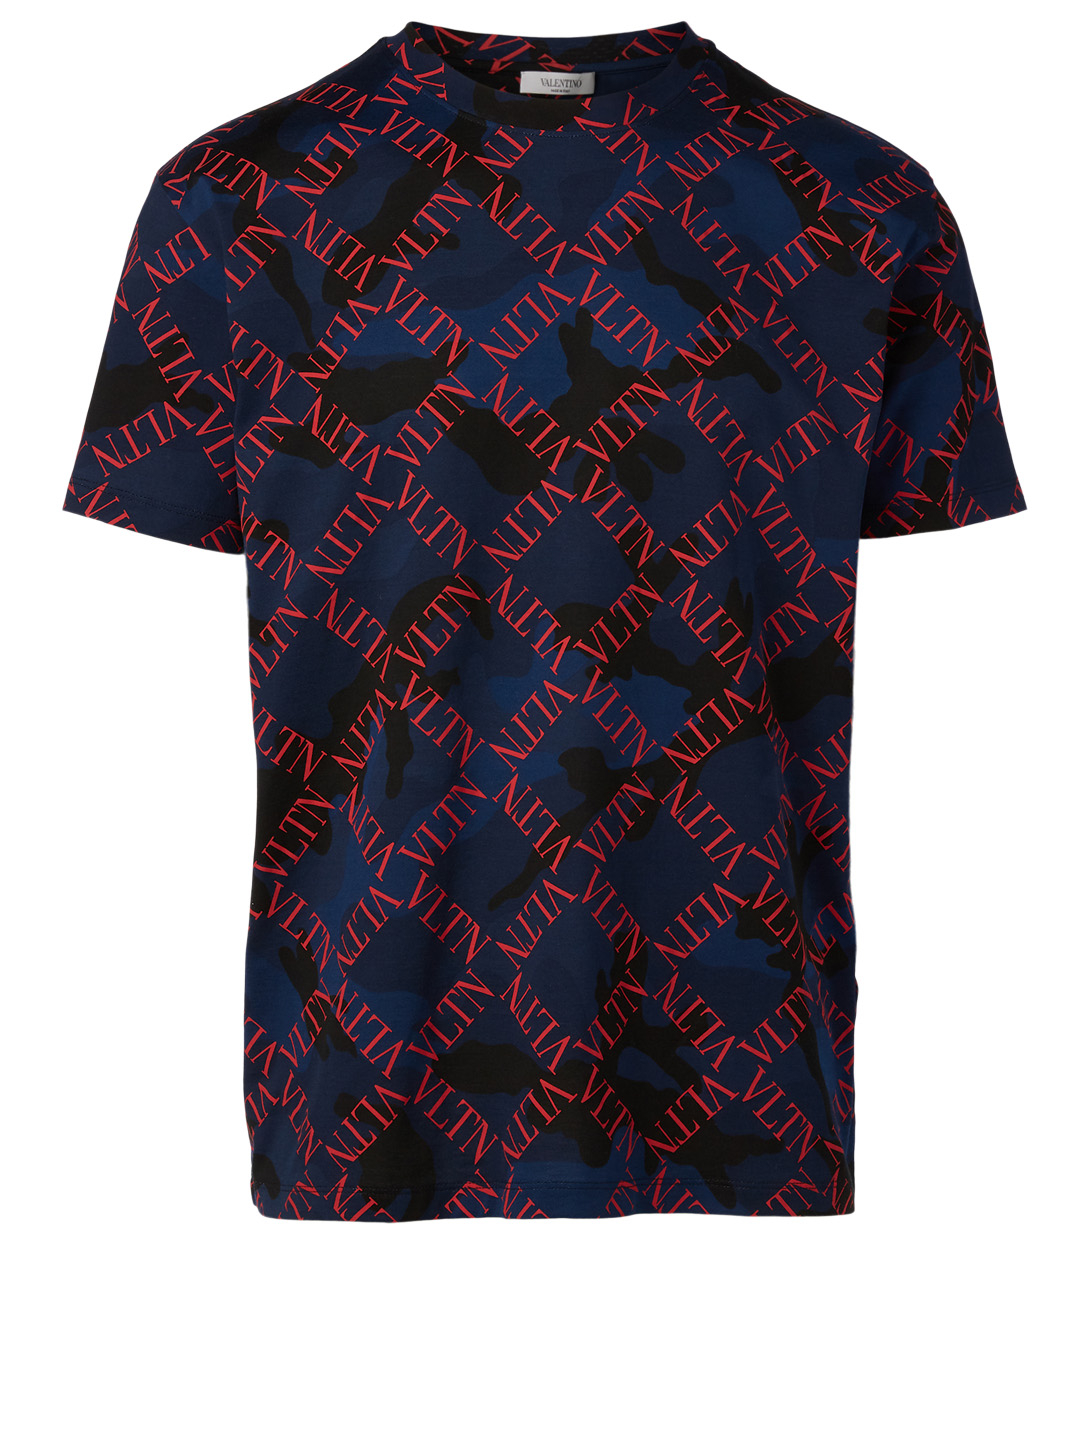 VALENTINO Cotton T-Shirt In VLTN Print Men's Blue